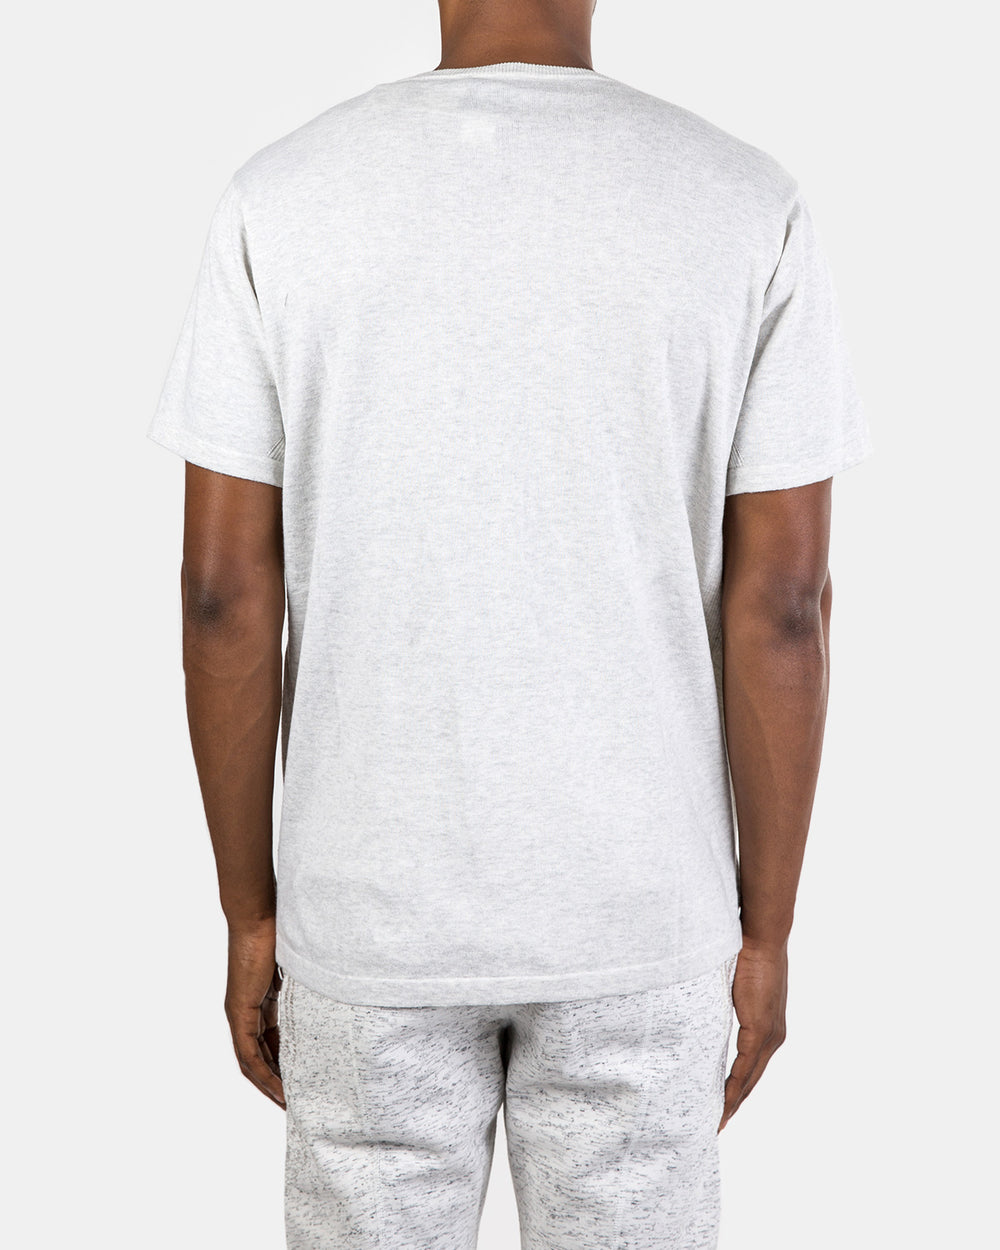 Wings + Horns x adidas Originals Knit Tee (Off White)